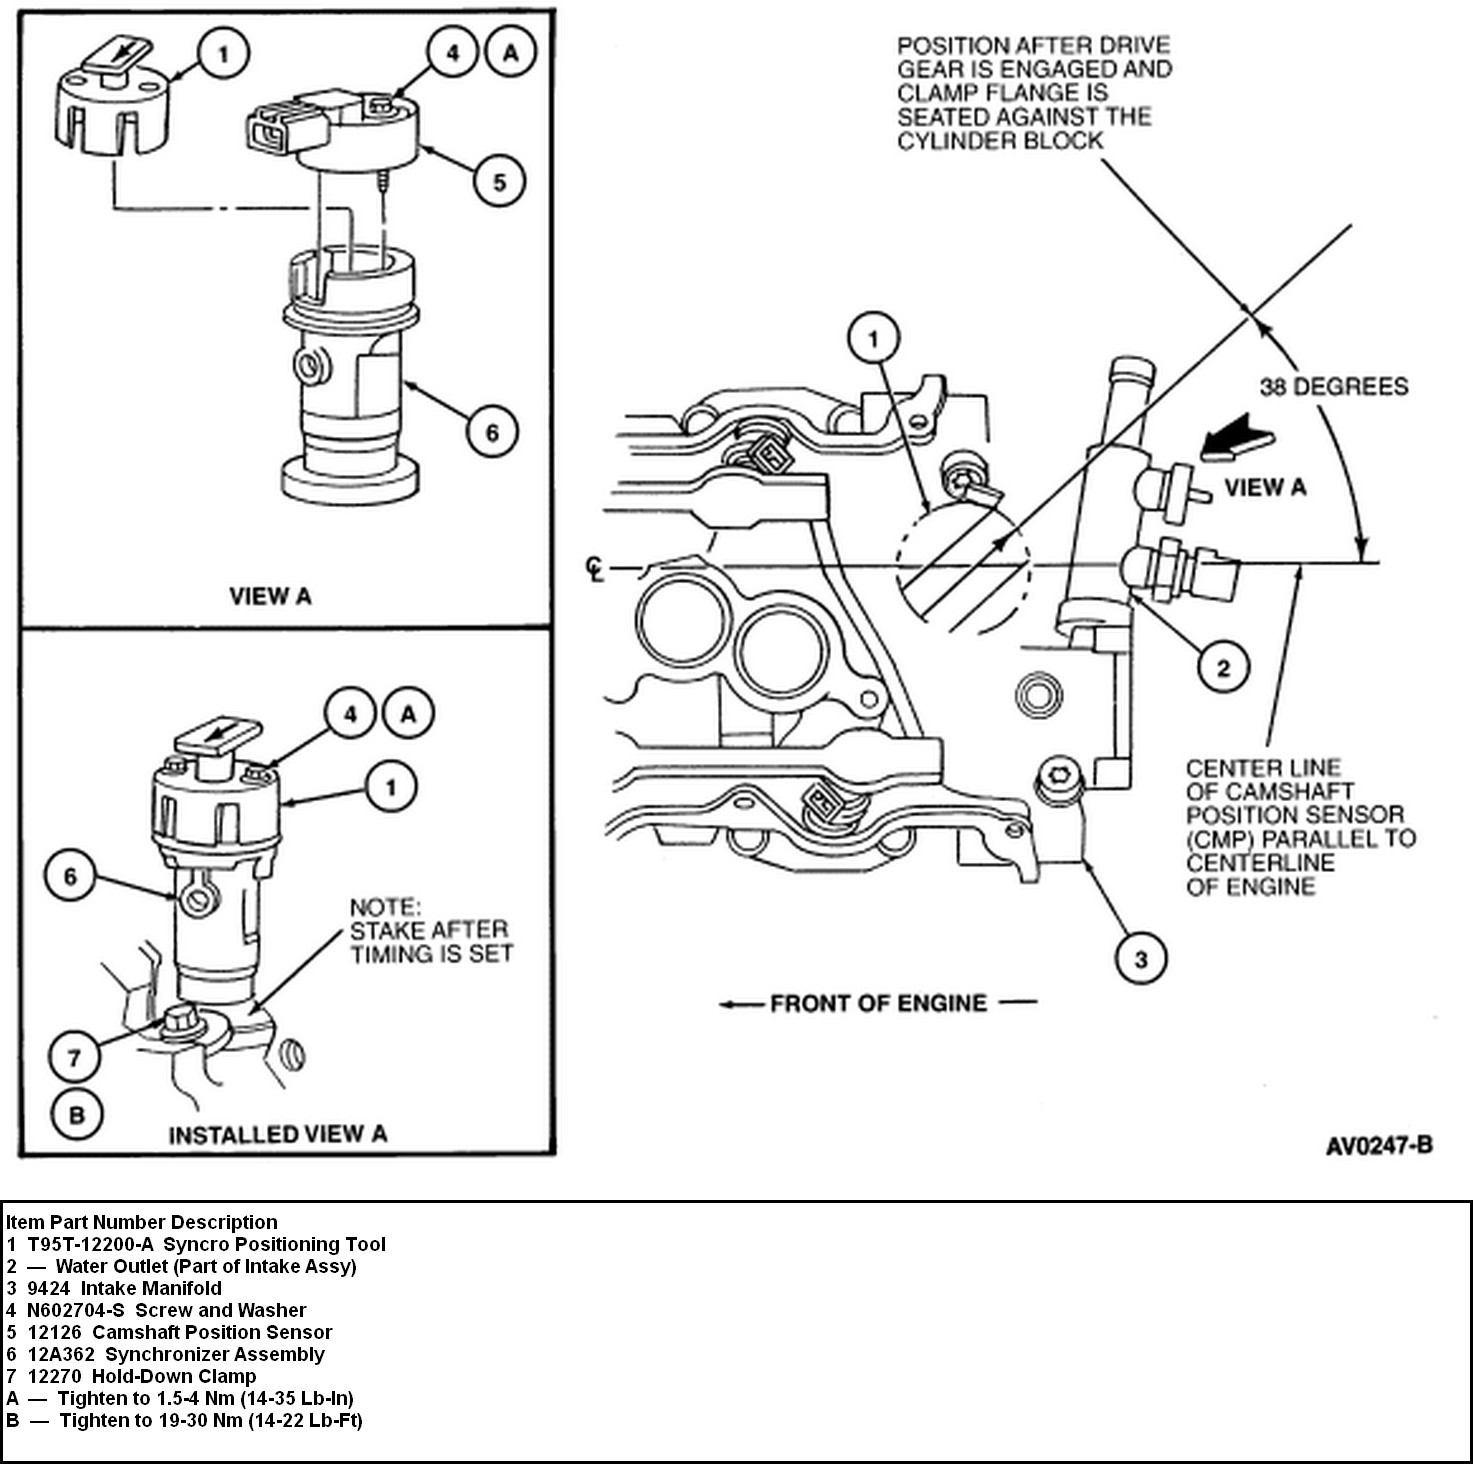 T7881991 2003 f250 5 4 knock sensor location as well Isuzu Rodeo 3 2l Engine Diagram as well Esqford1 likewise Chevy Astro Engine Diagram furthermore 1994 Ford F150 Engine Sensor Diagram. on ford map sensor location